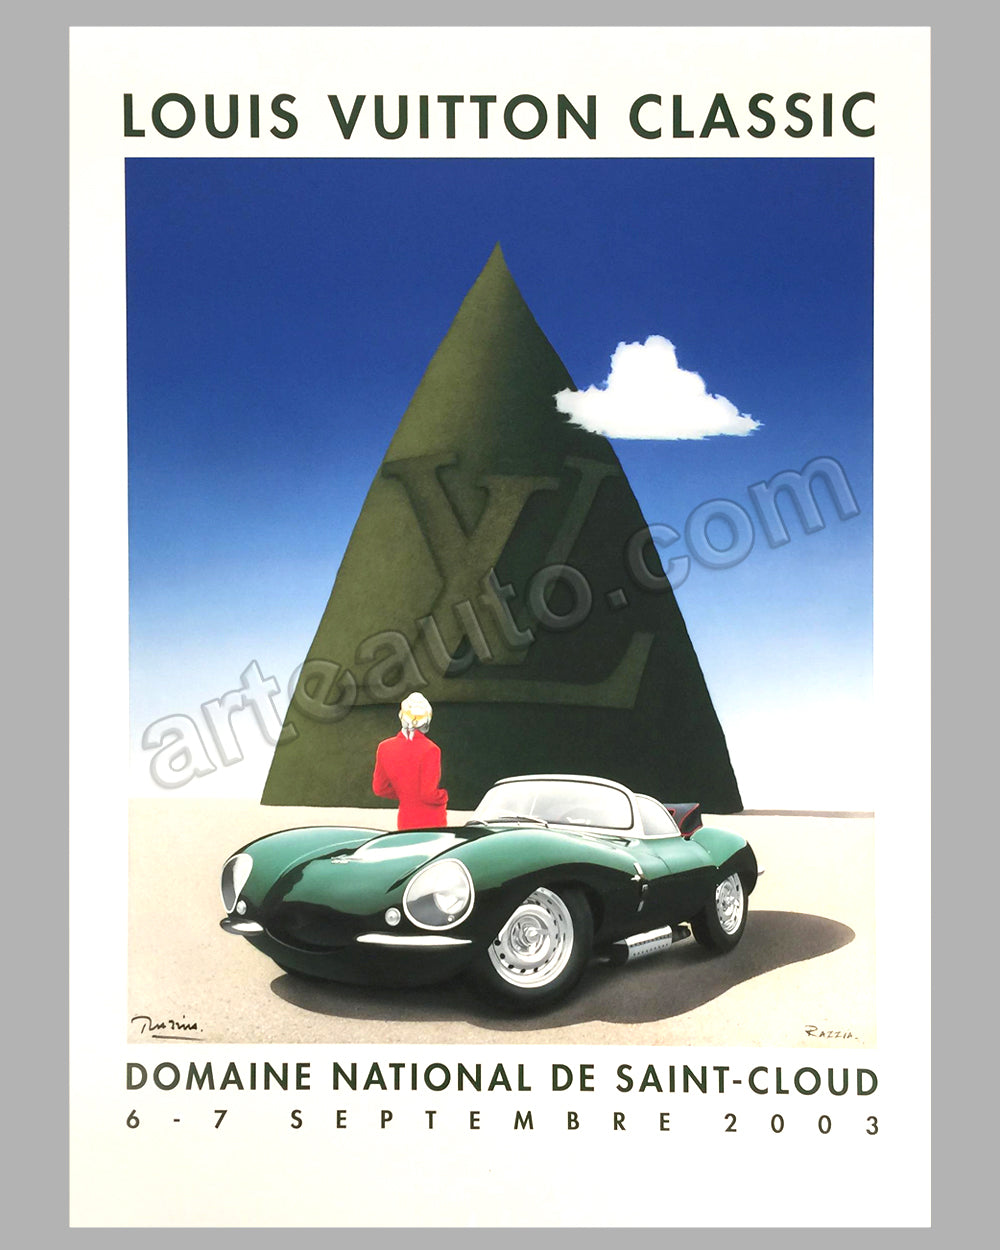 "Louis Vuitton Classic Concours d'Elegance St Cloud 2003 poster by Razzia<br><span style=""color: #ff0000;"">TEMPORARILY OUT OF STOCK</span>"